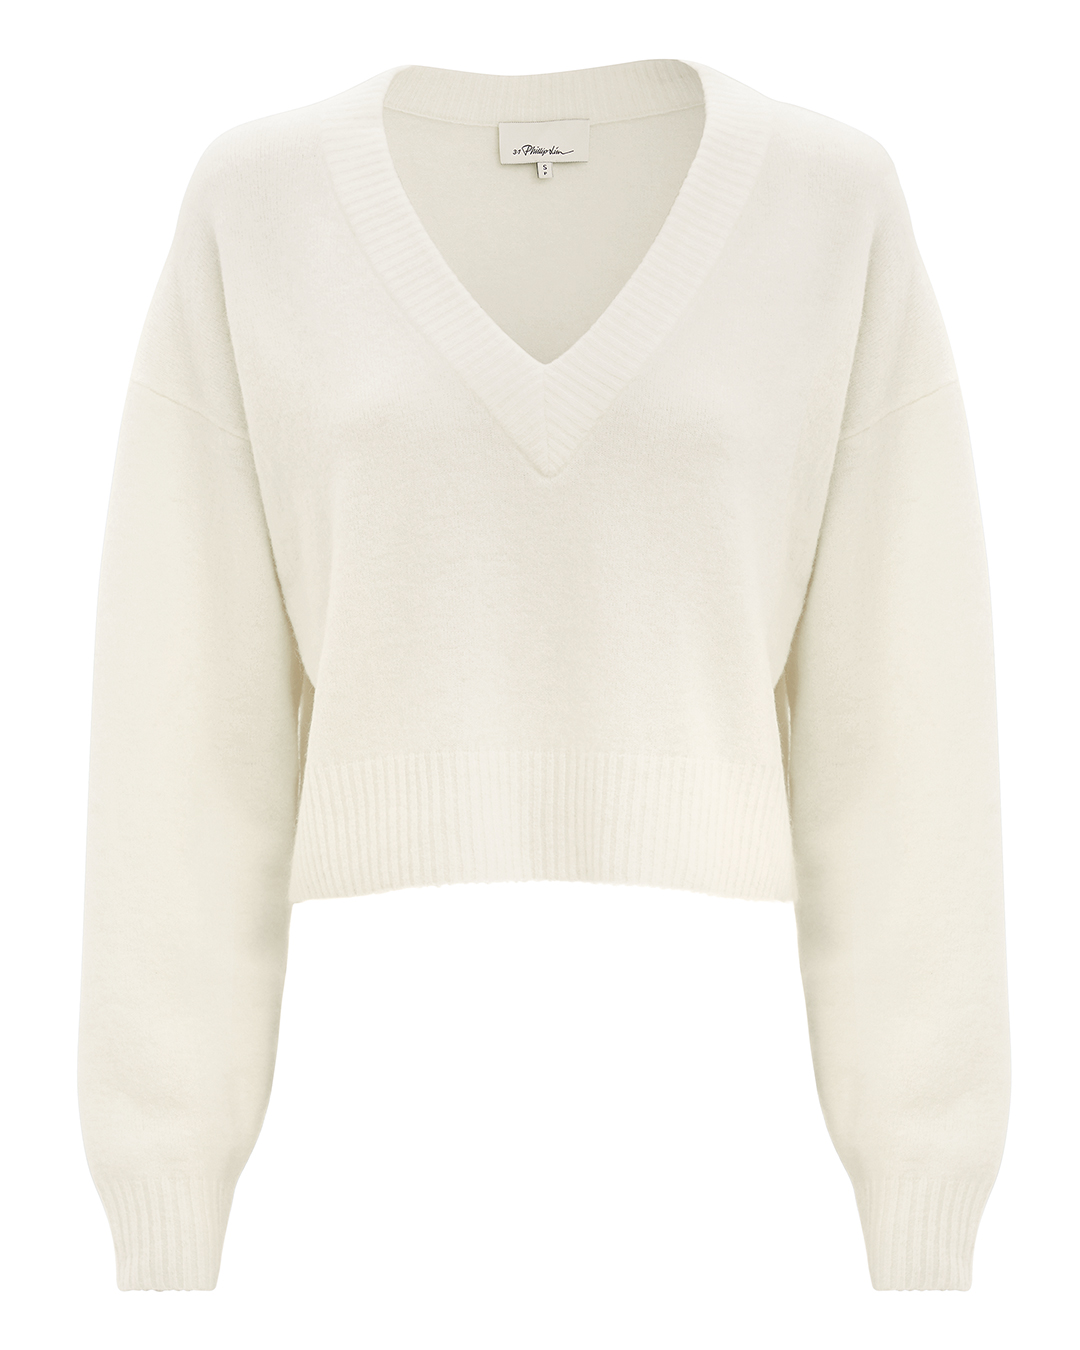 PHILLIP LIM Cropped Sweater